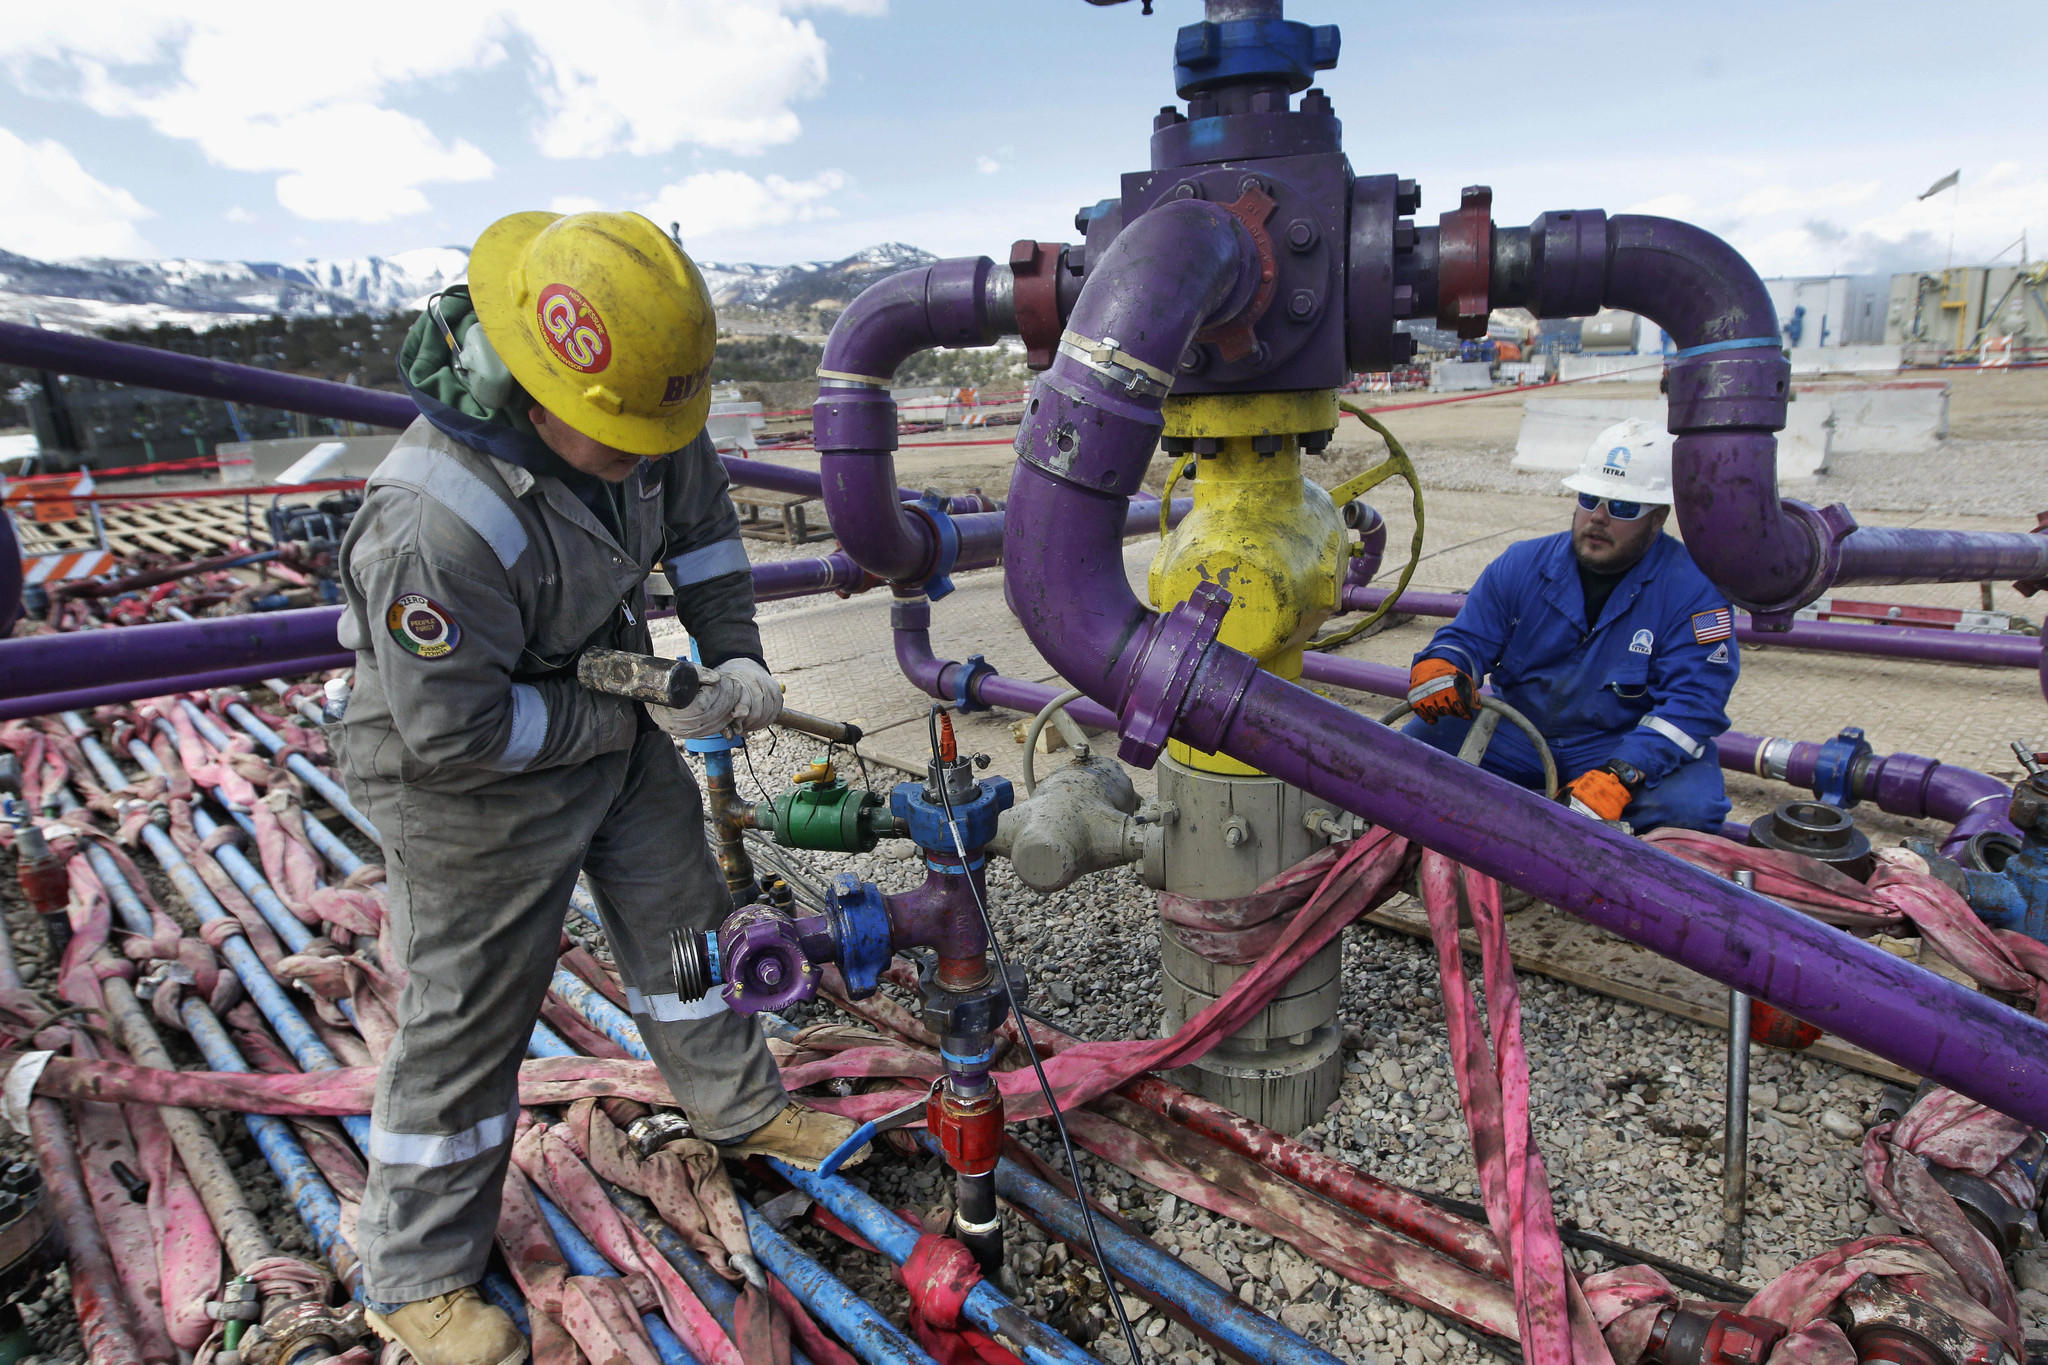 Workers tend to a wellhead at a hydraulic fracturing operation in western Colorado.